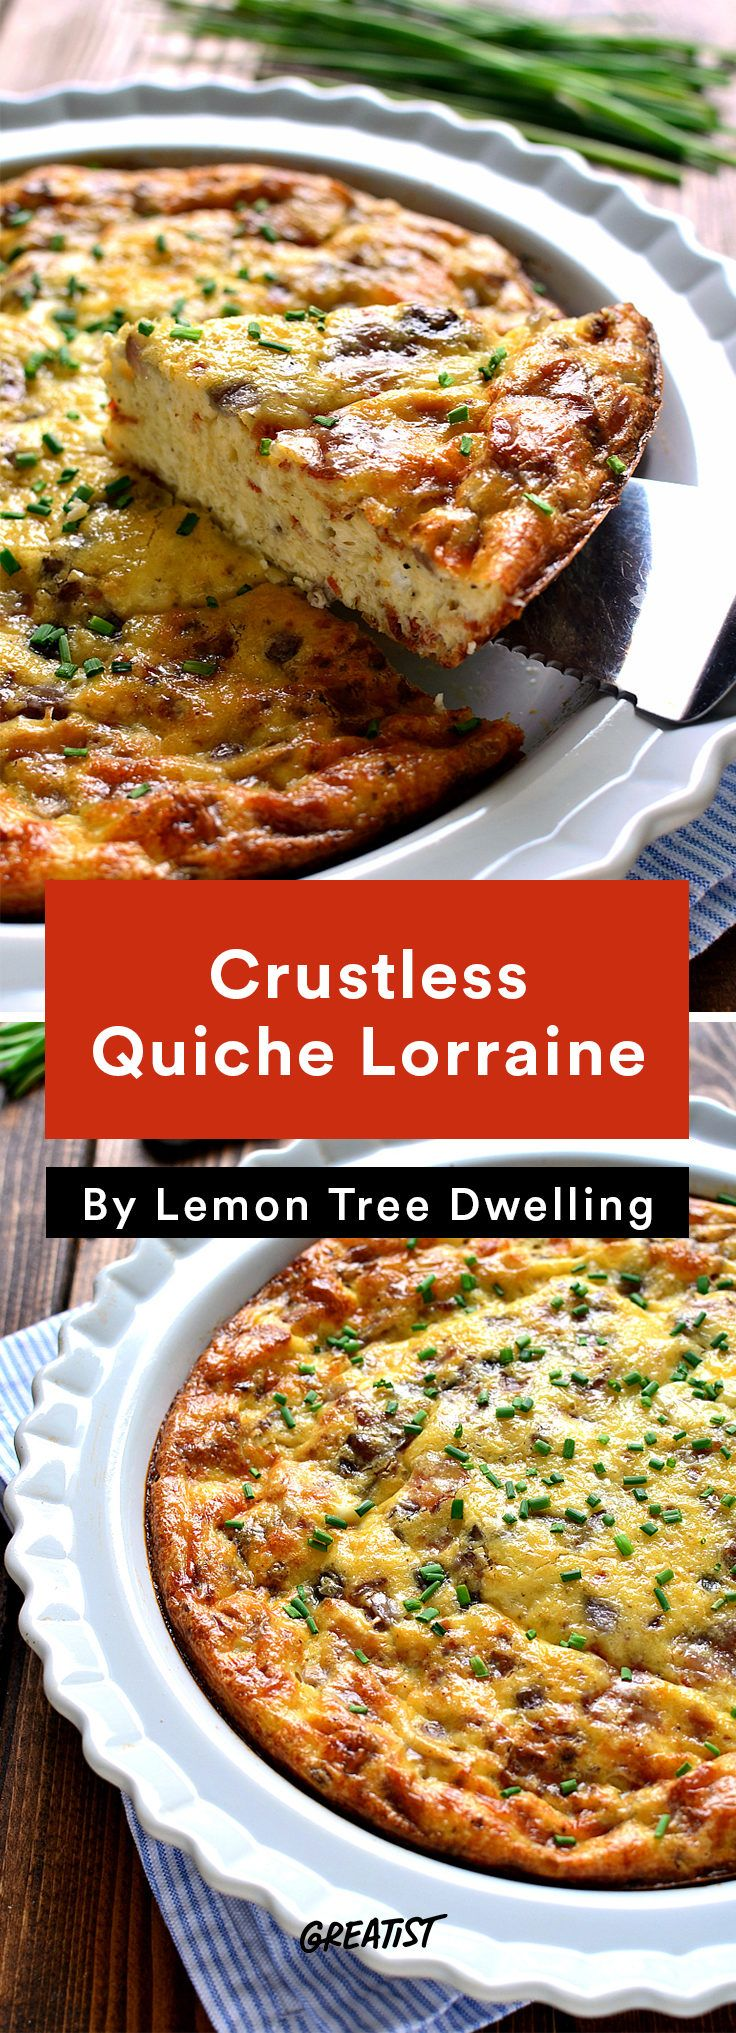 Crustless Quiche Lorraine Recipe